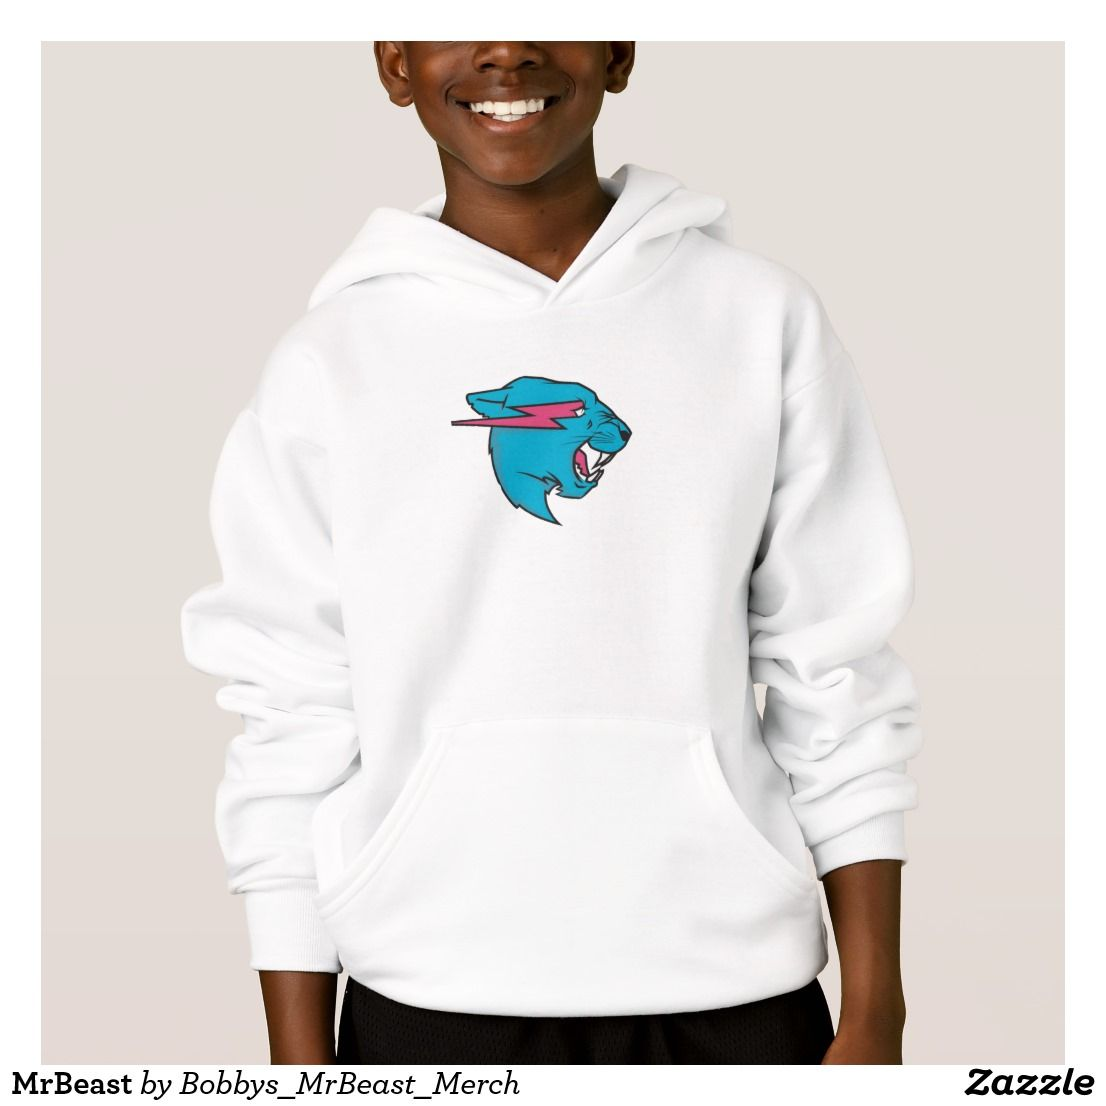 Mrbeast T Shirt Zazzle Com In 2020 Royalty Clothing Kids Outfits Shirts